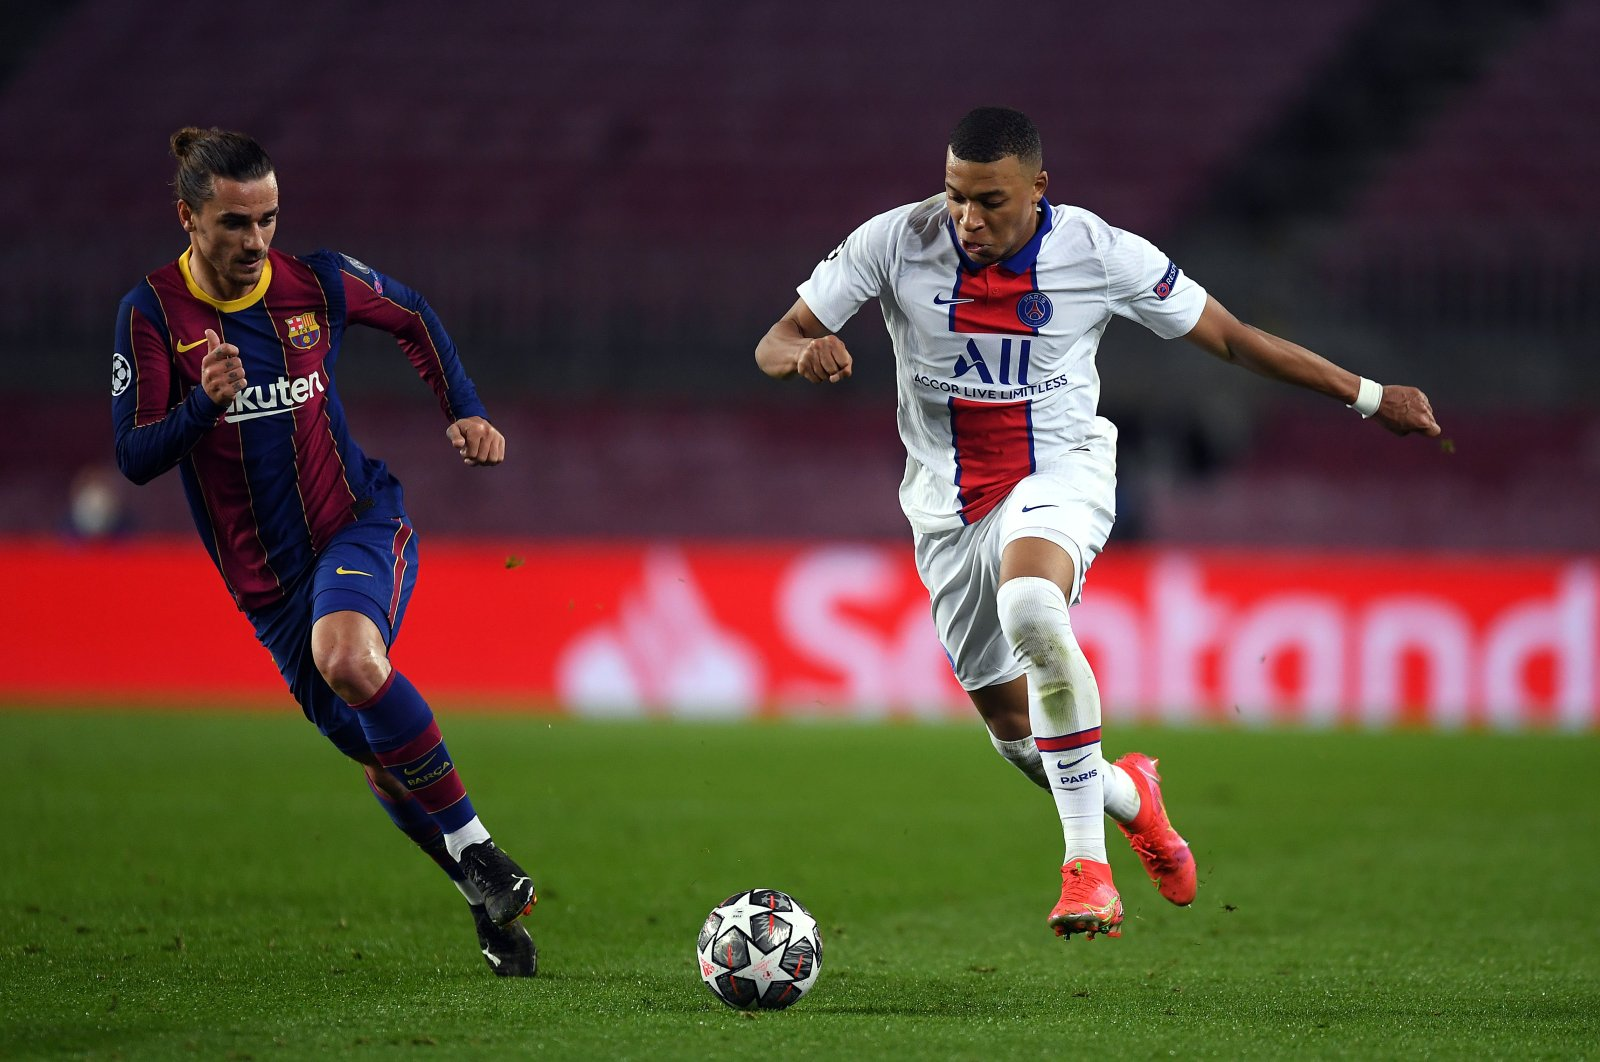 PSG's Kylian Mbappe tries to go past Barcelona's Antoine Griezmann during a Champions League Round of 16 match at Camp Nou, Barcelona, Spain, Feb. 16, 2021. (Getty Images)